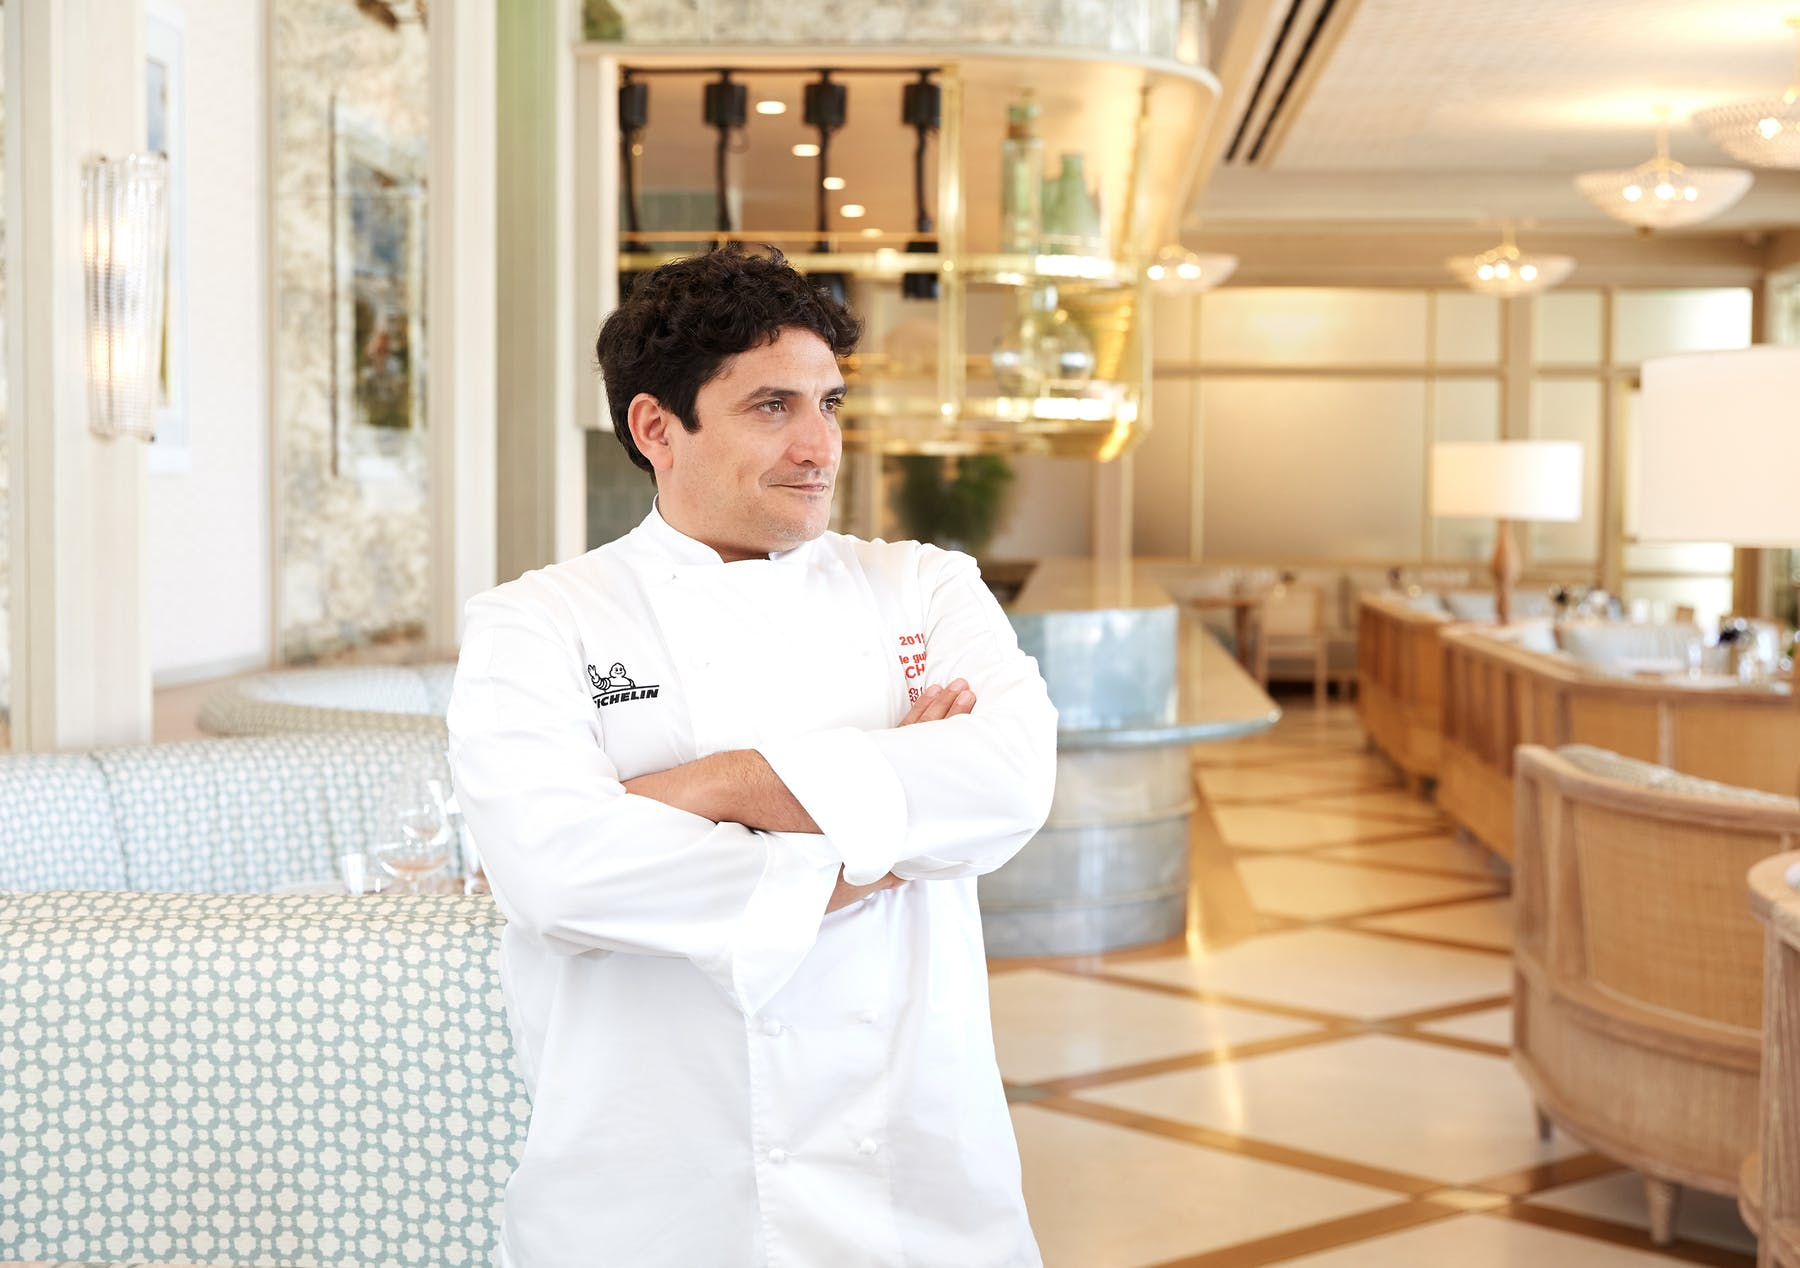 Mauro Colagreco standing in a kitchen